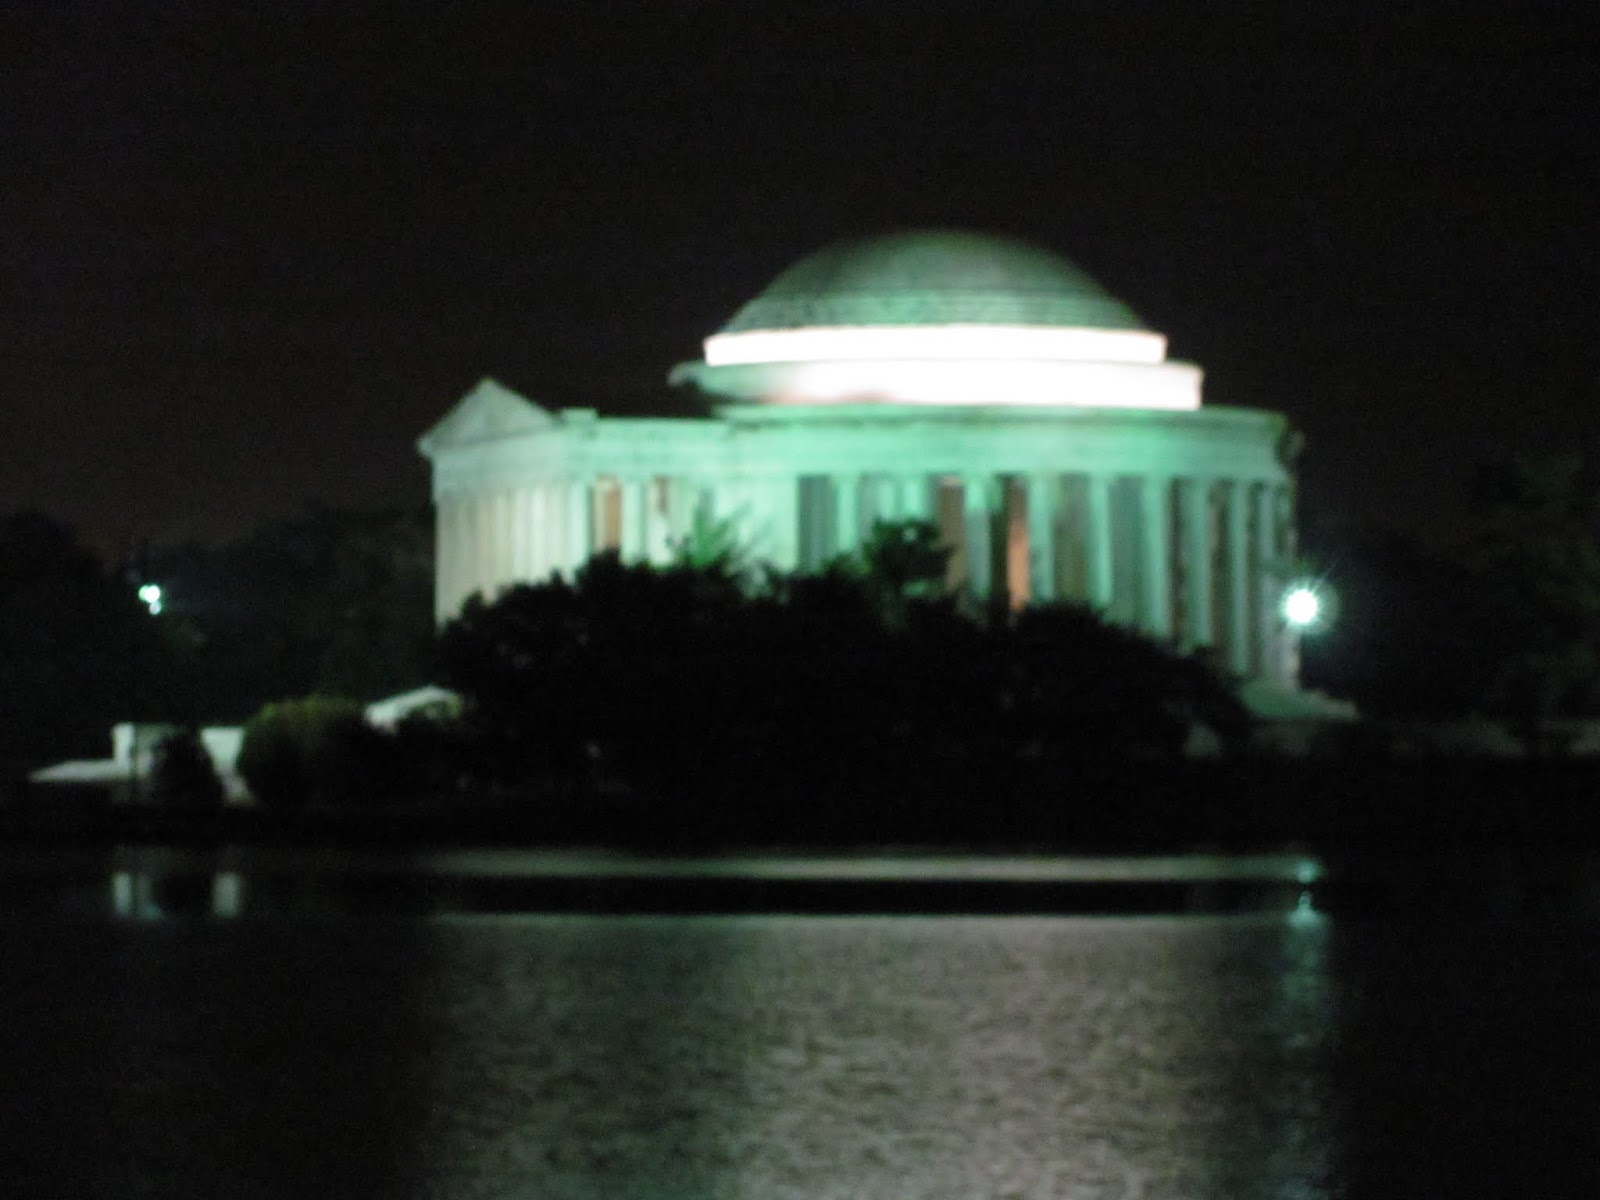 Pictured at a distance across the tidal basin in Washington, DC